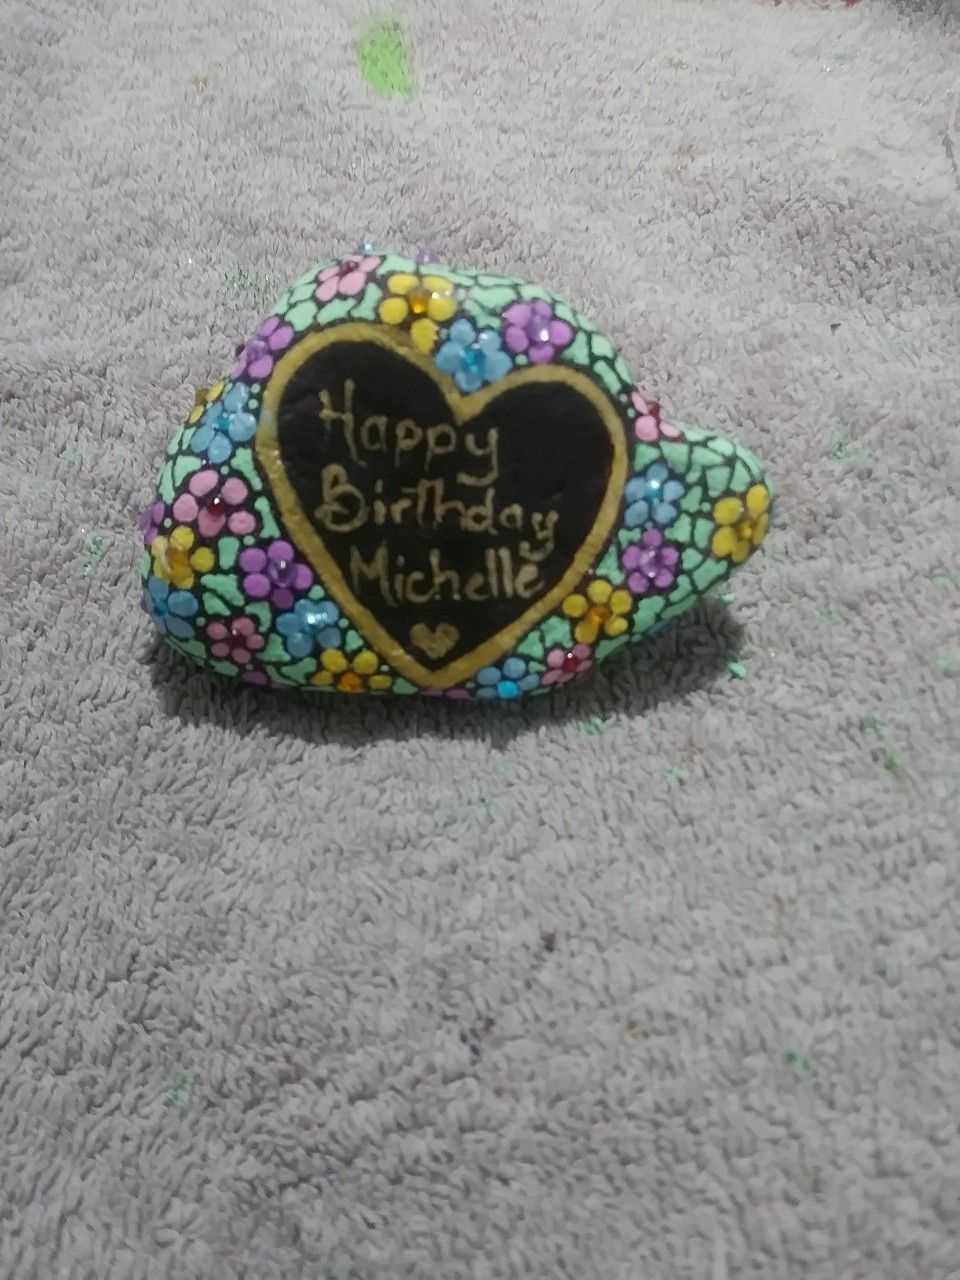 Pin by Earl on my creations in 2020 Happy birthday